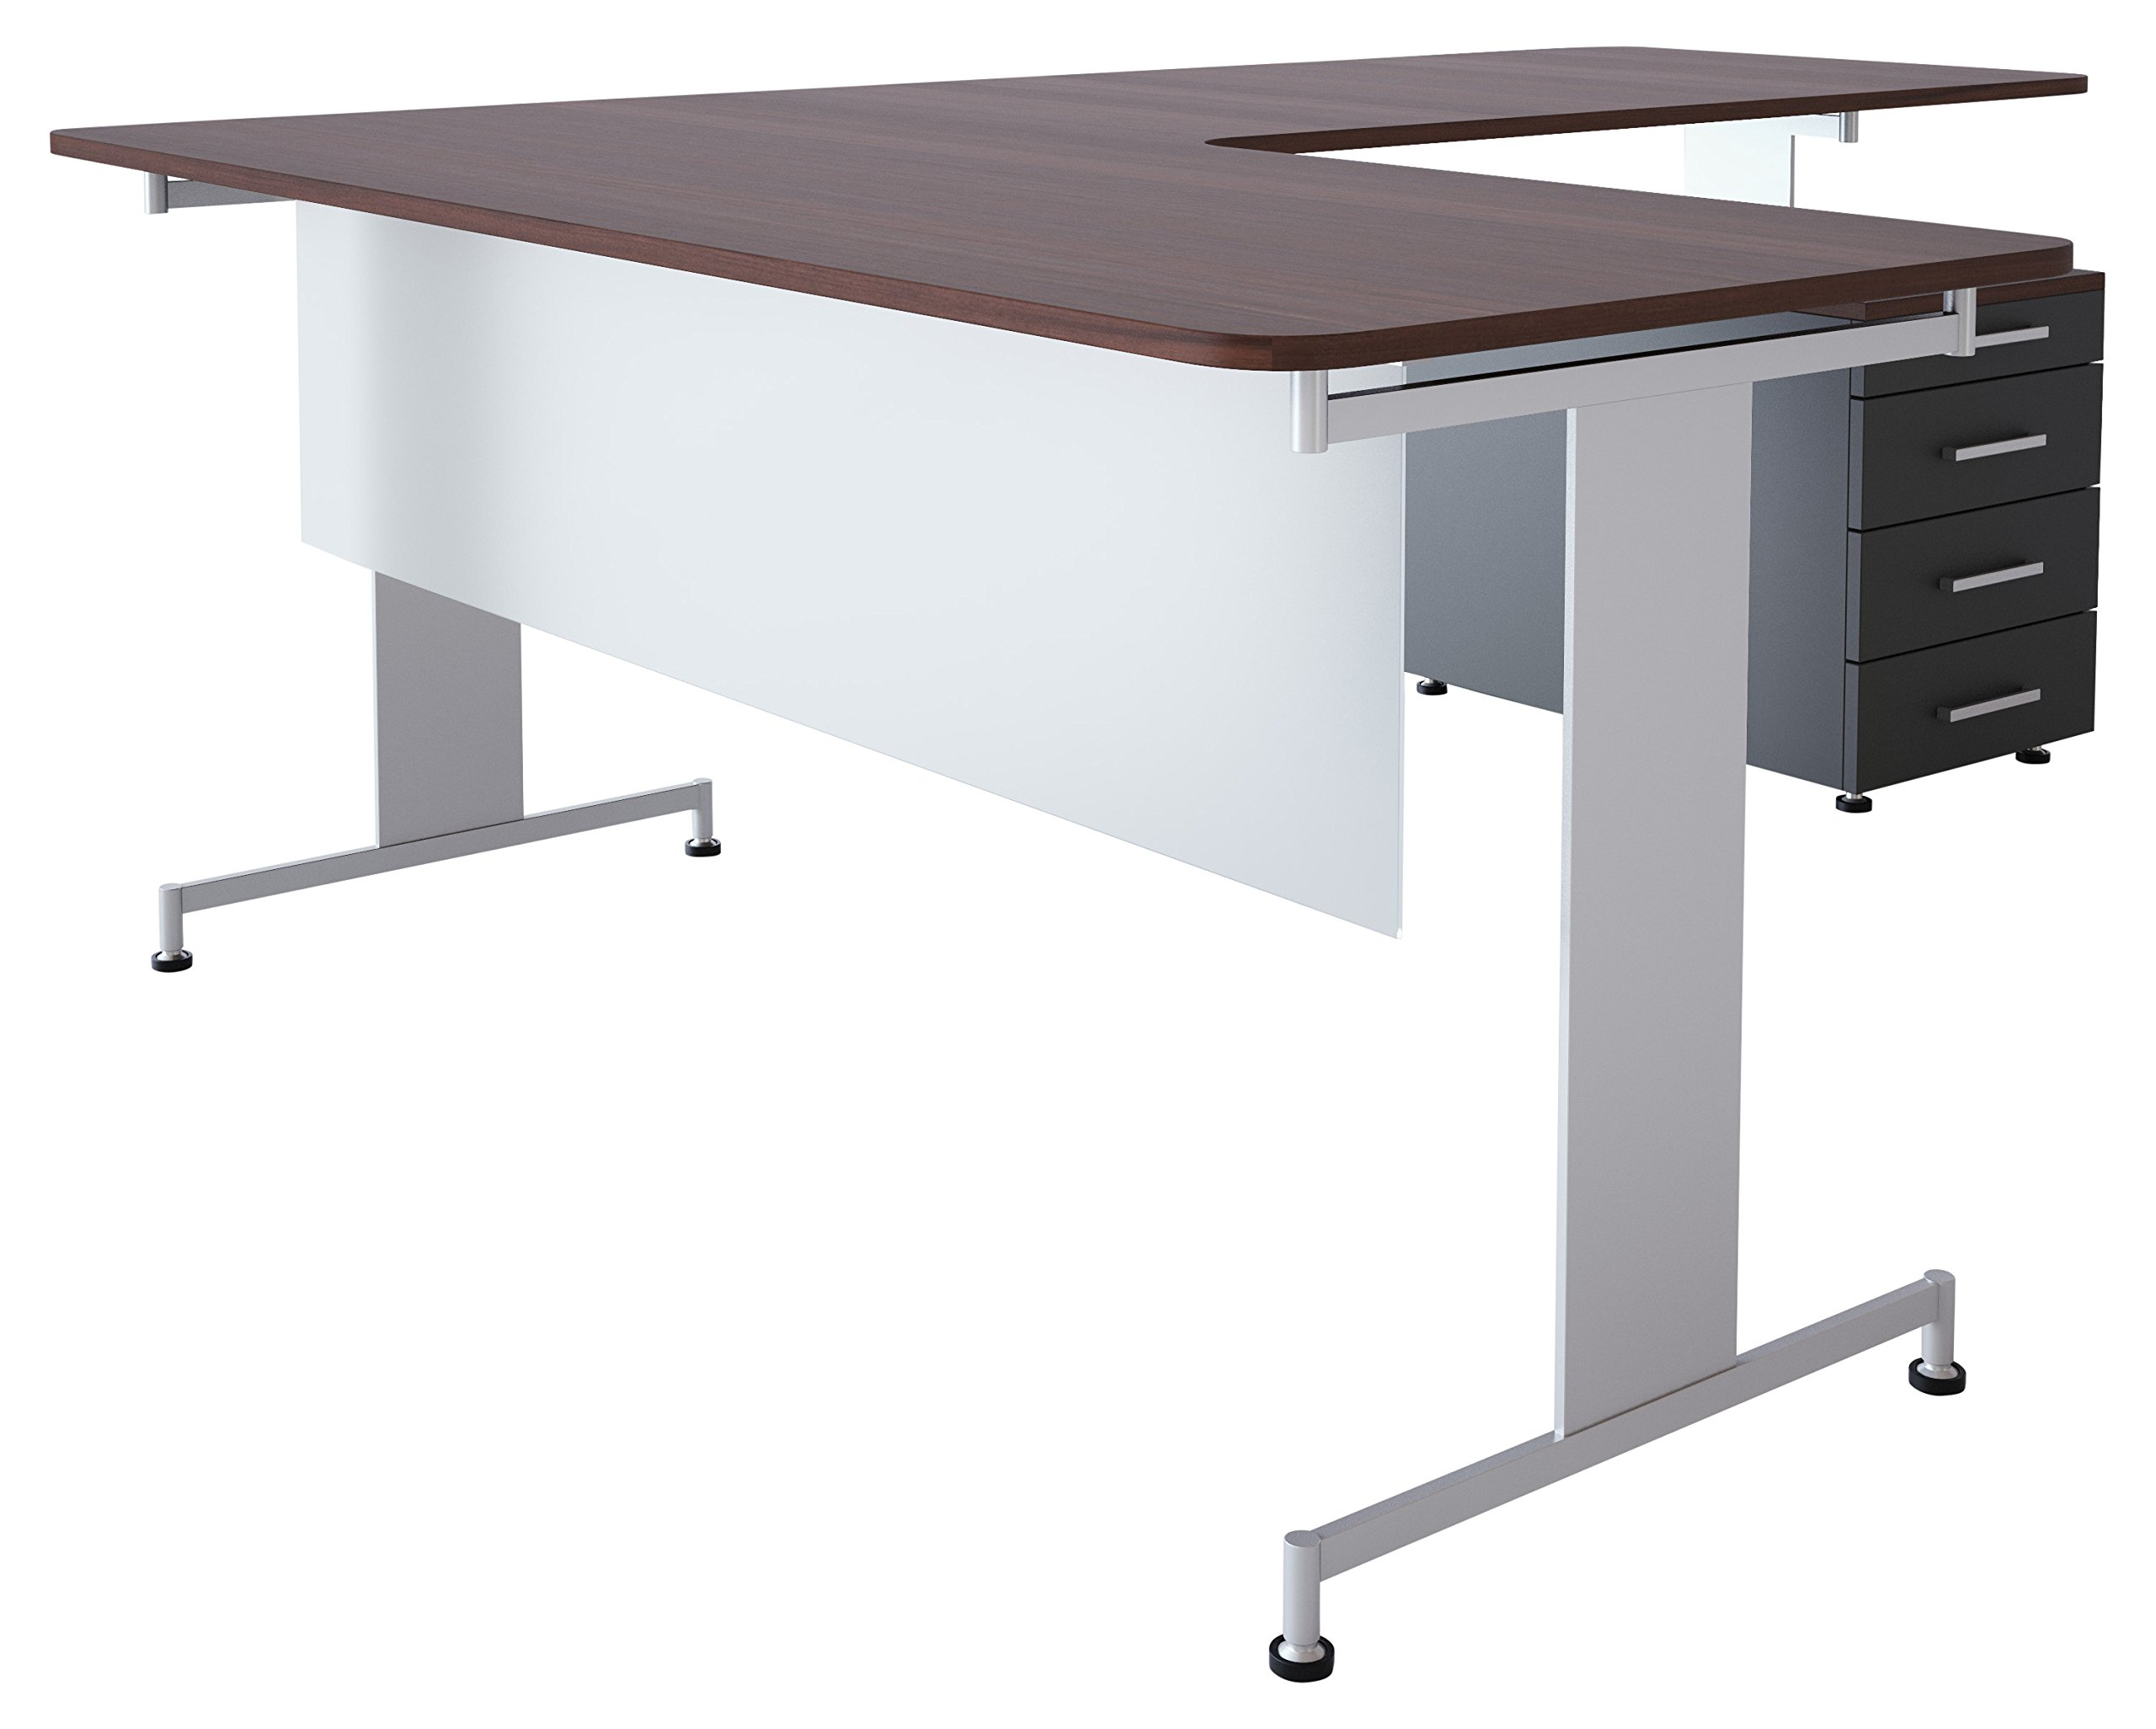 Obex 18X36FA-L-XX-MP 18'' Frosted Acrylic Desk and Table Mounted Modesty Panel, Light Brown Frame, 18'' x 36''